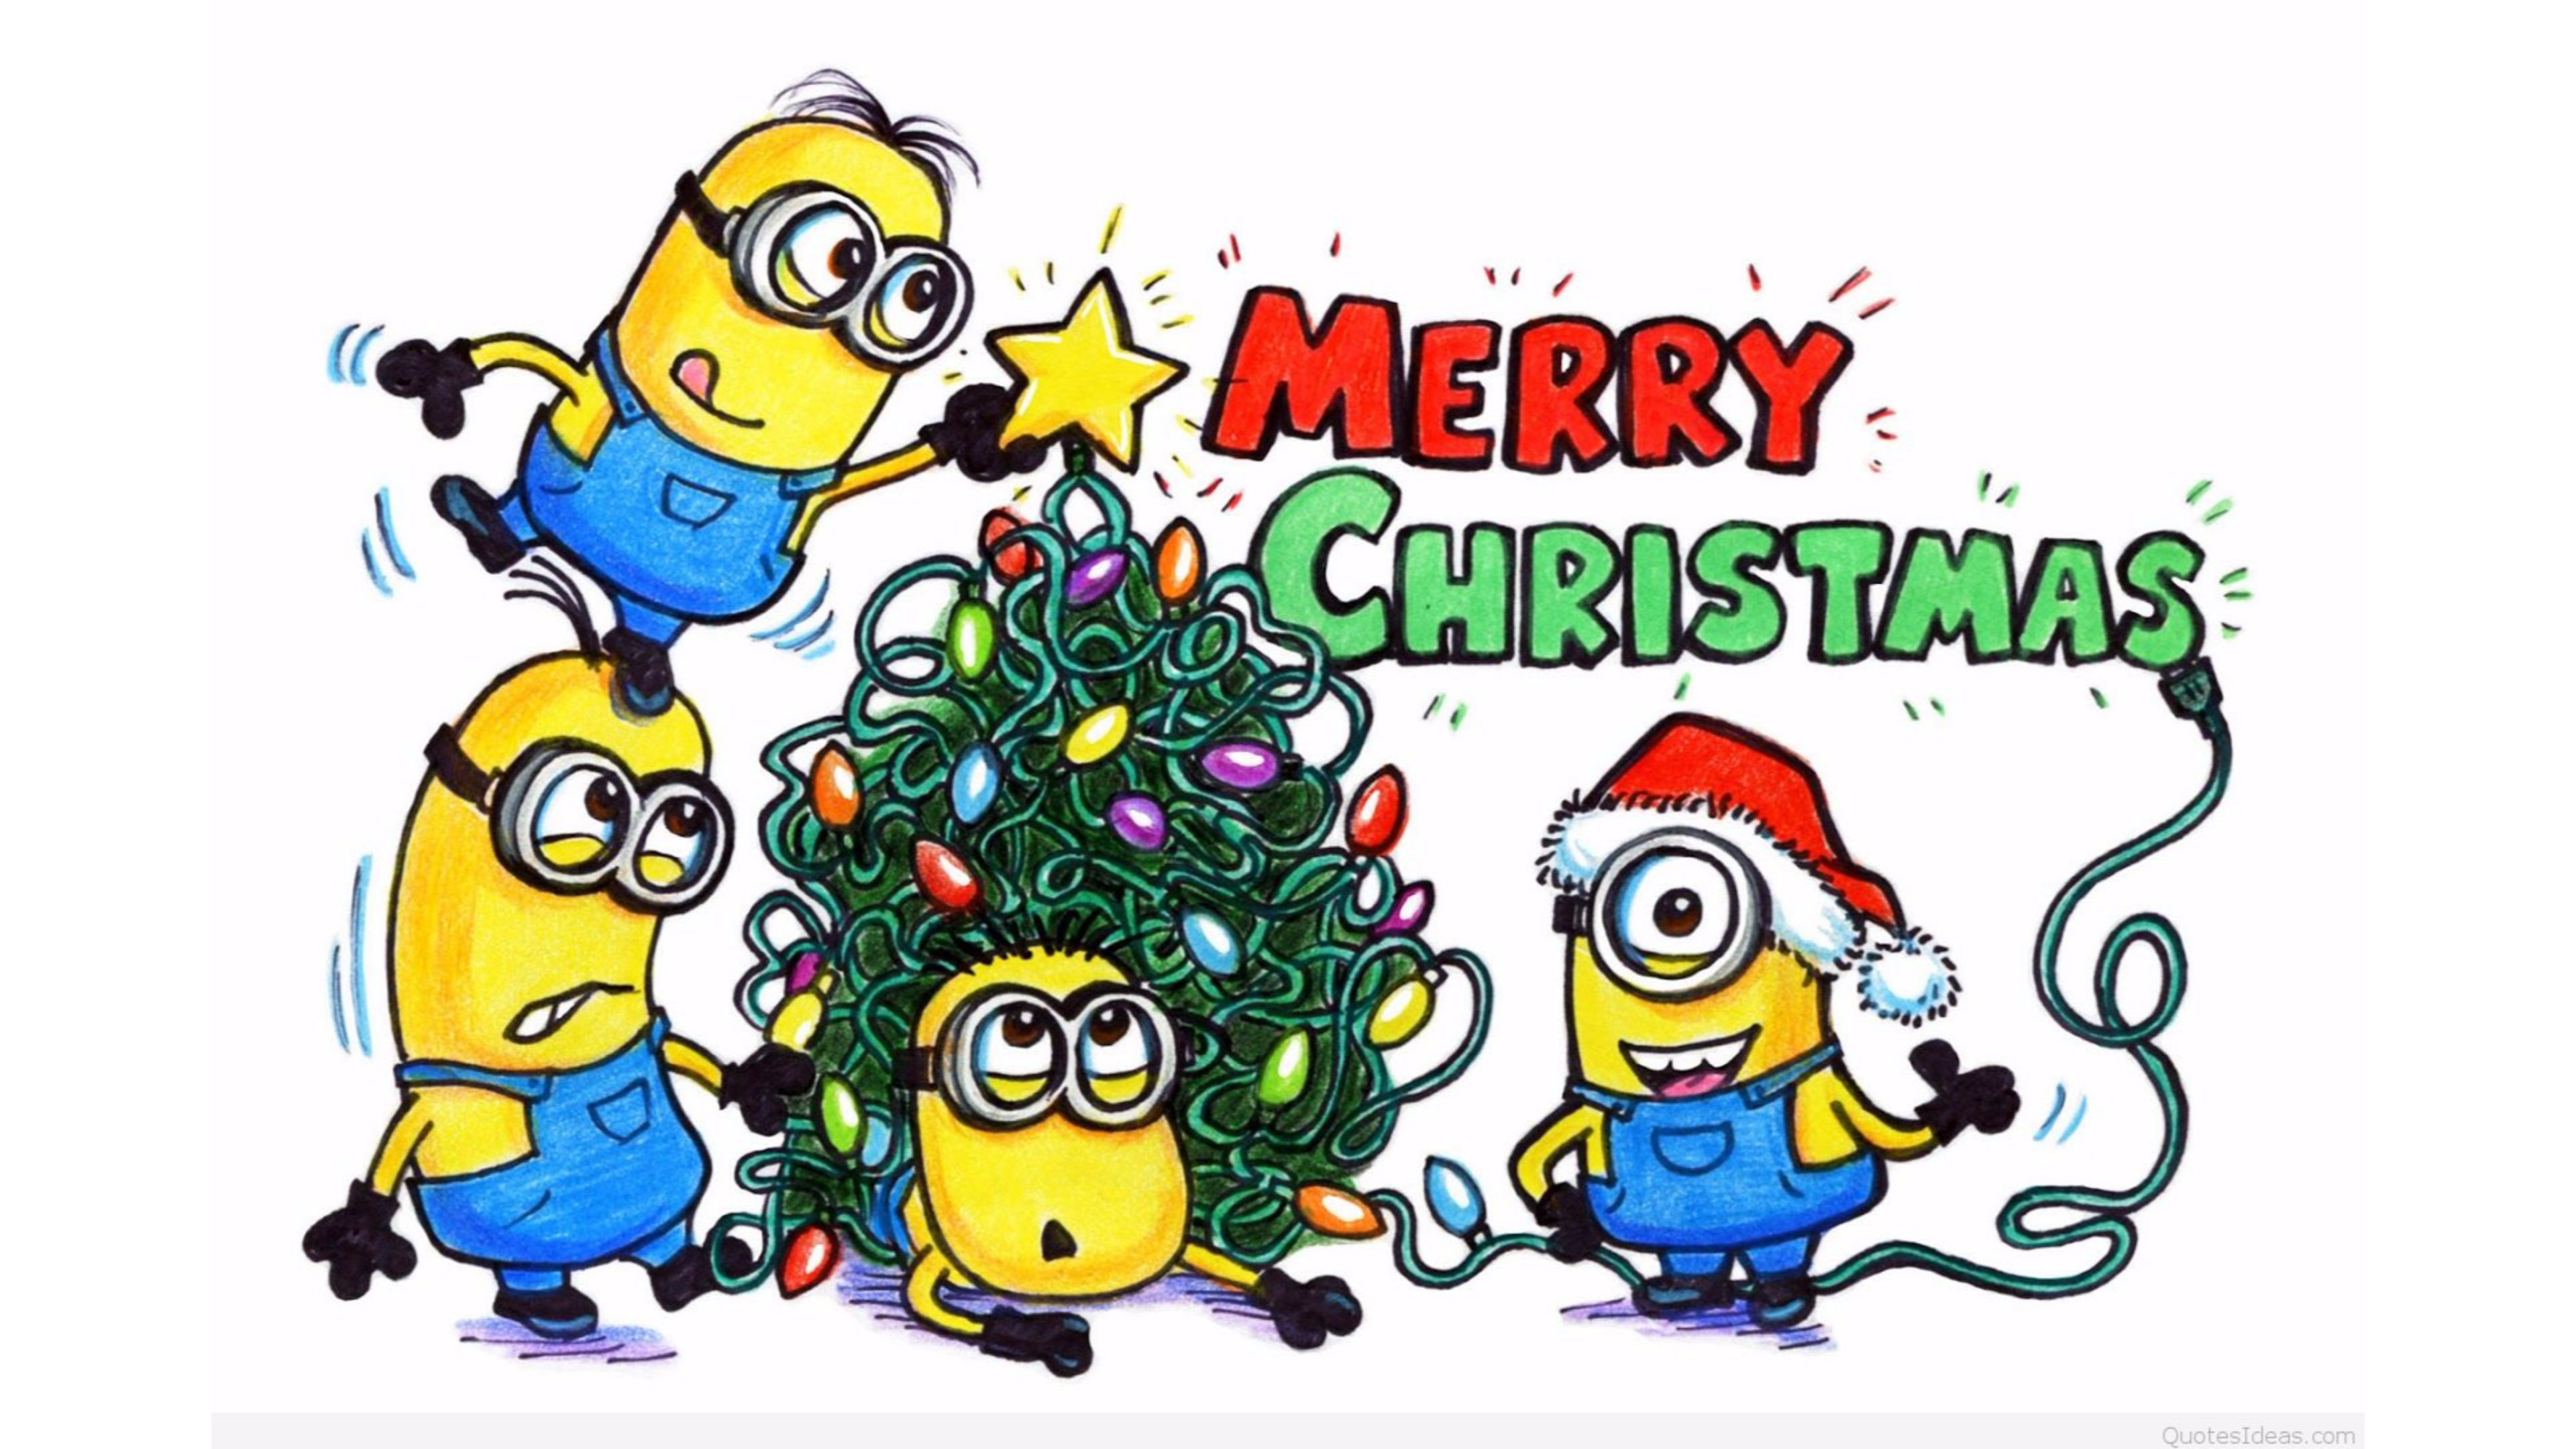 Merry Christmas Minions wallpaper